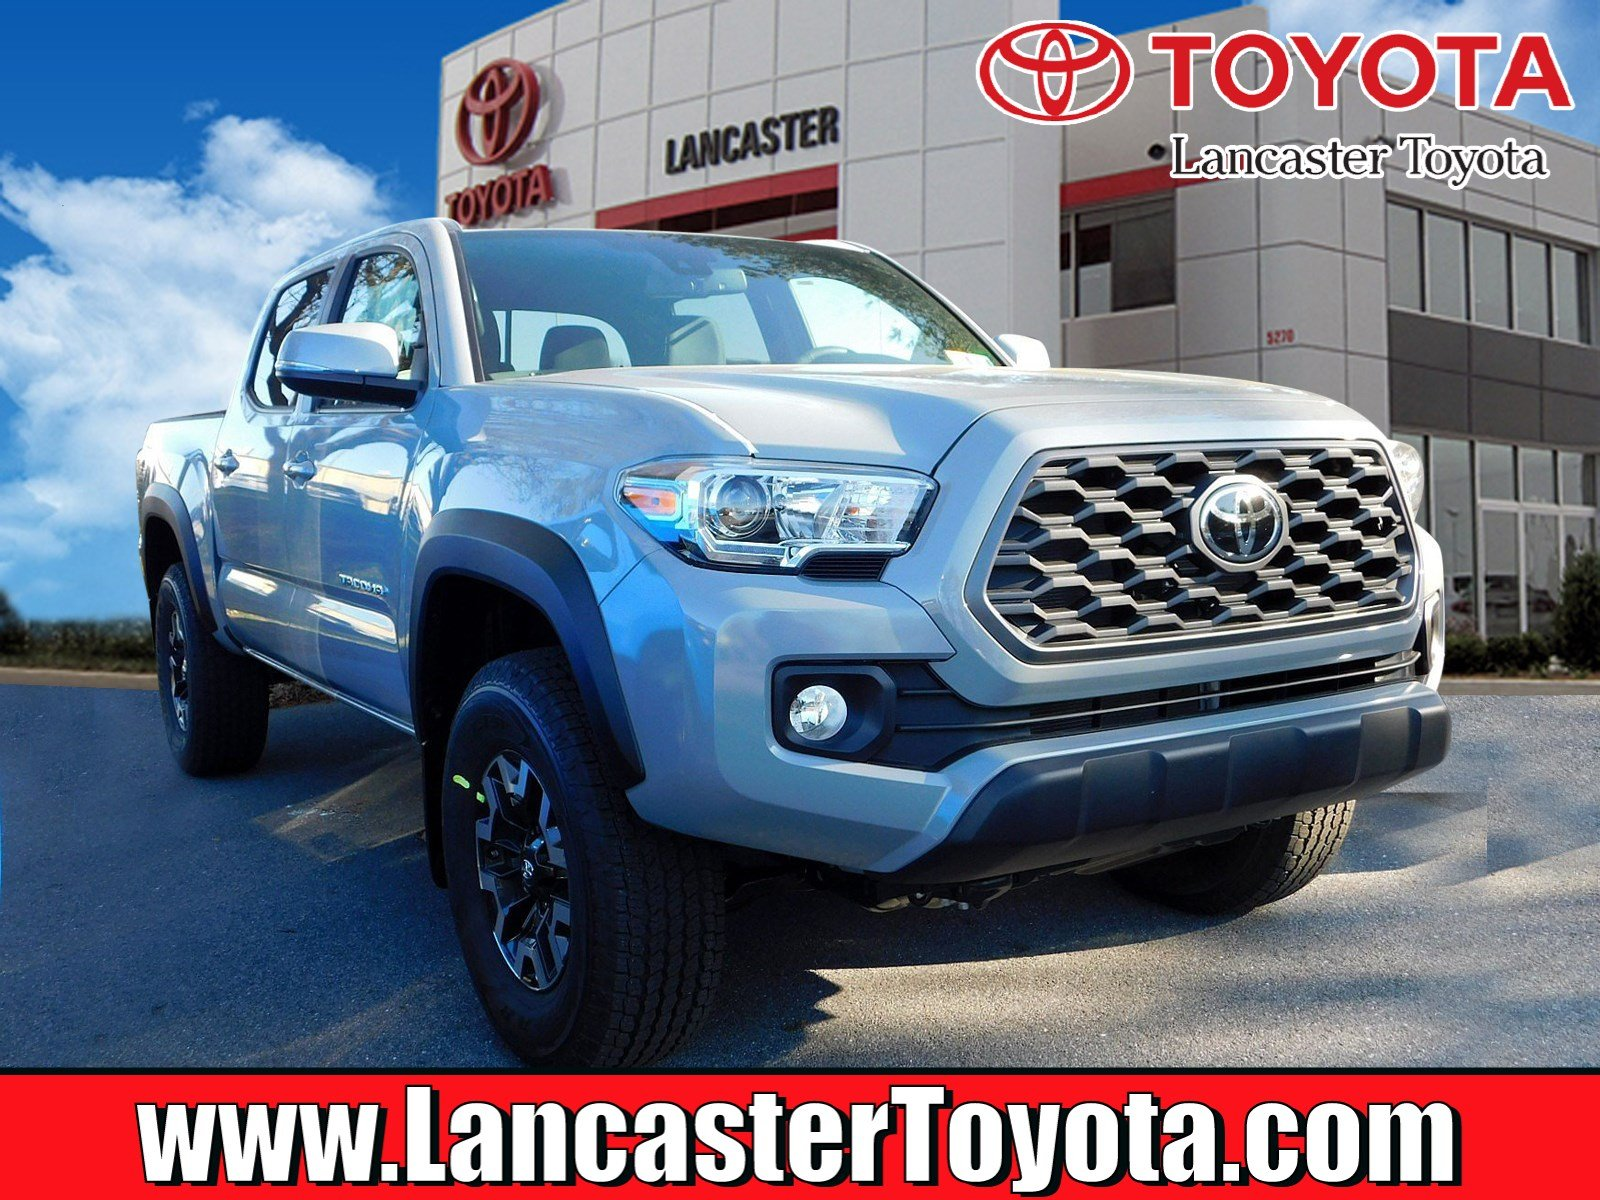 New 2020 Toyota Tacoma Trd Off Road Trd Off Road Double Cab 5 Bed V6 At Natl